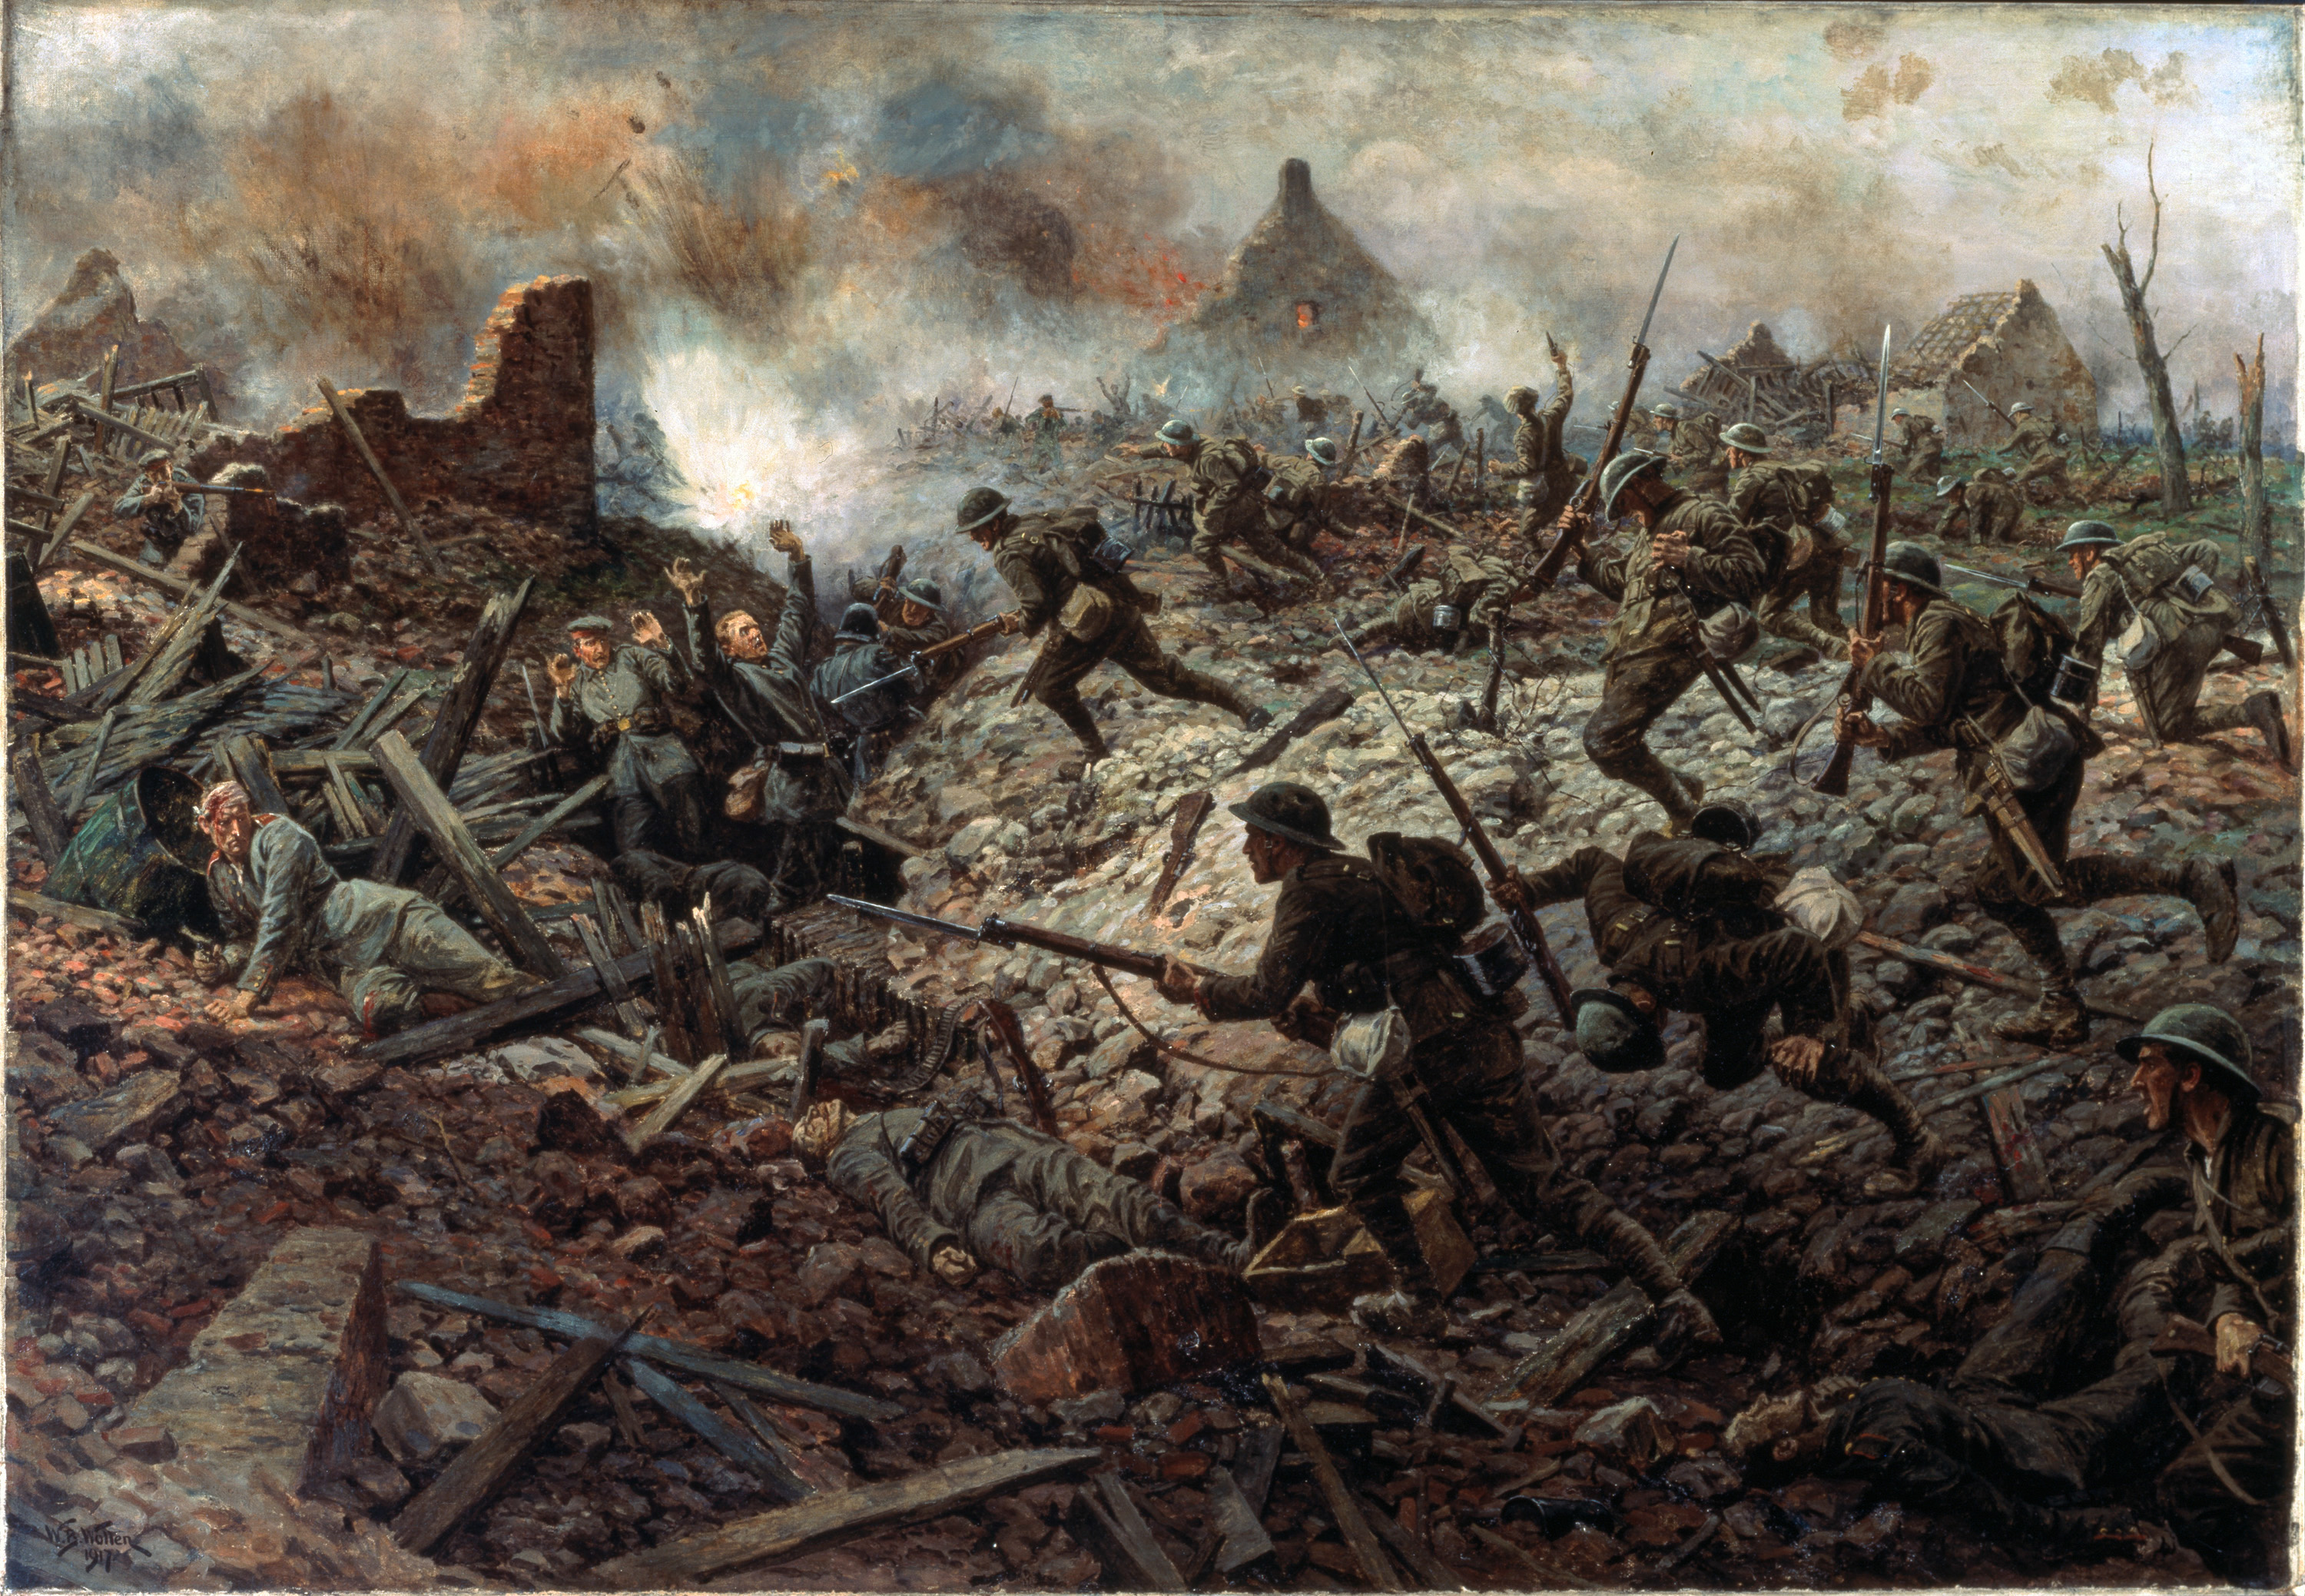 Ardmayle Heritage Society Lecture: The Somme 1916, Oct. 20